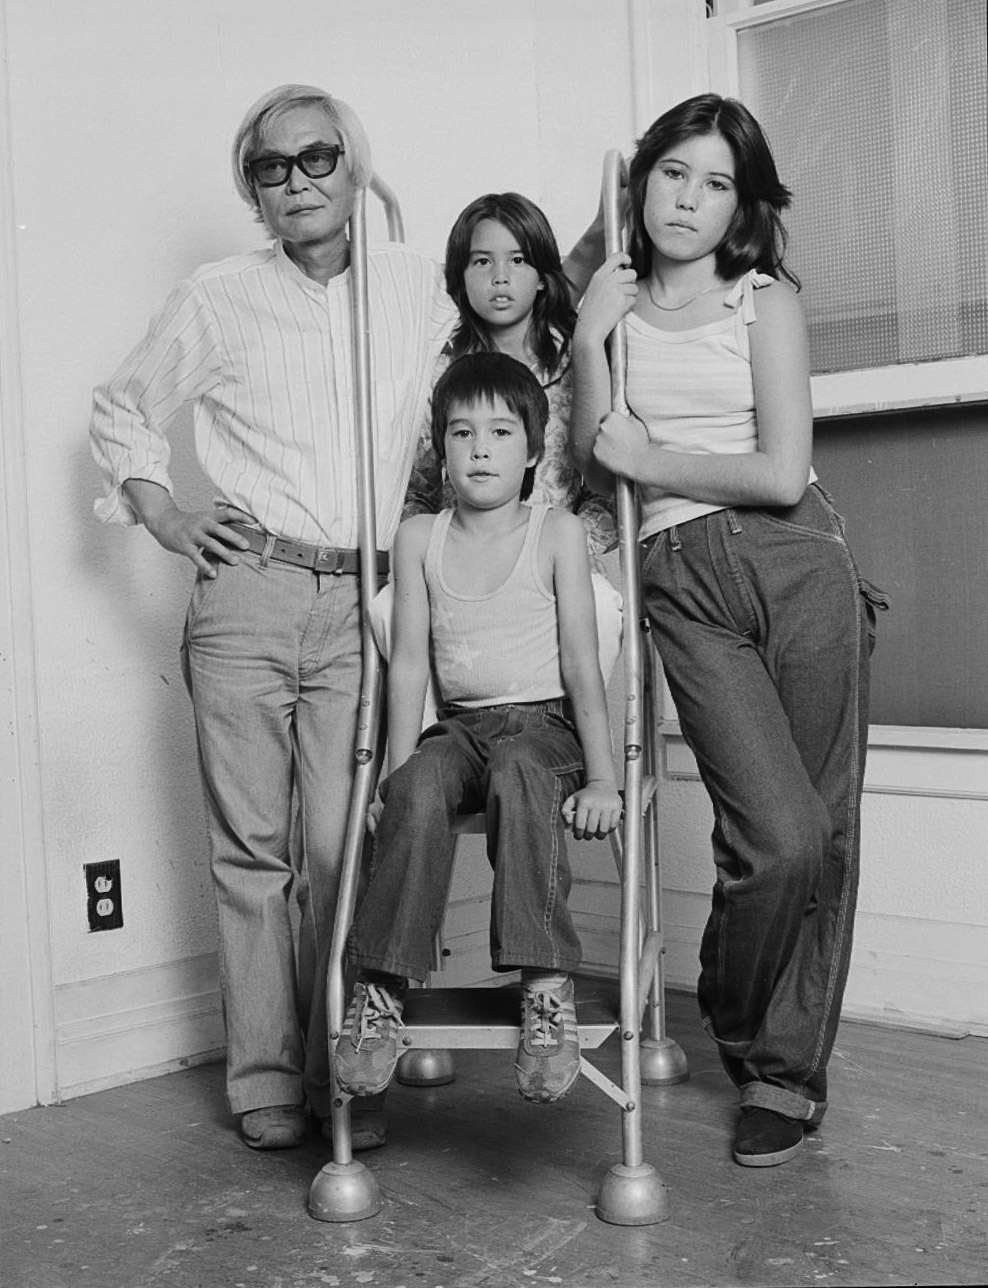 Kanemitsu with his children, Zoe, Patia, and Paul in Los Angeles, 1978. Photographed by Douglas Parker for Muncipal Art Gallery.